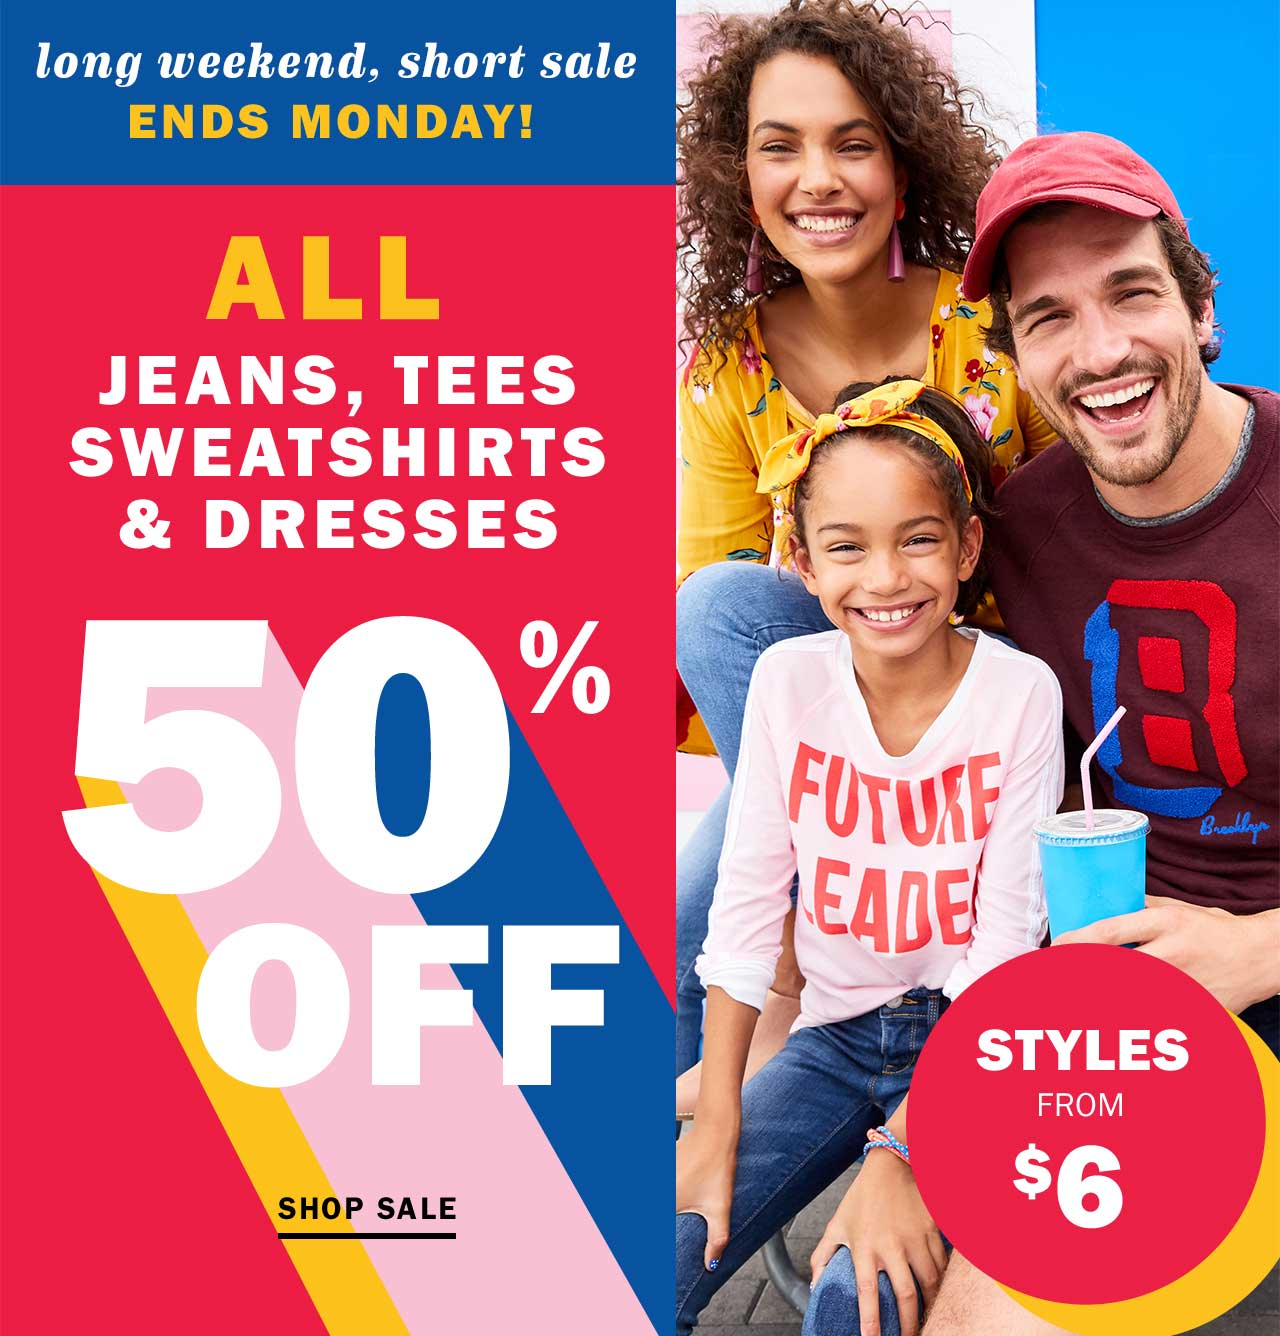 ALL JEANS, TEES SWEATSHIRTS & DRESSES 50% OFF | SHOP SALE